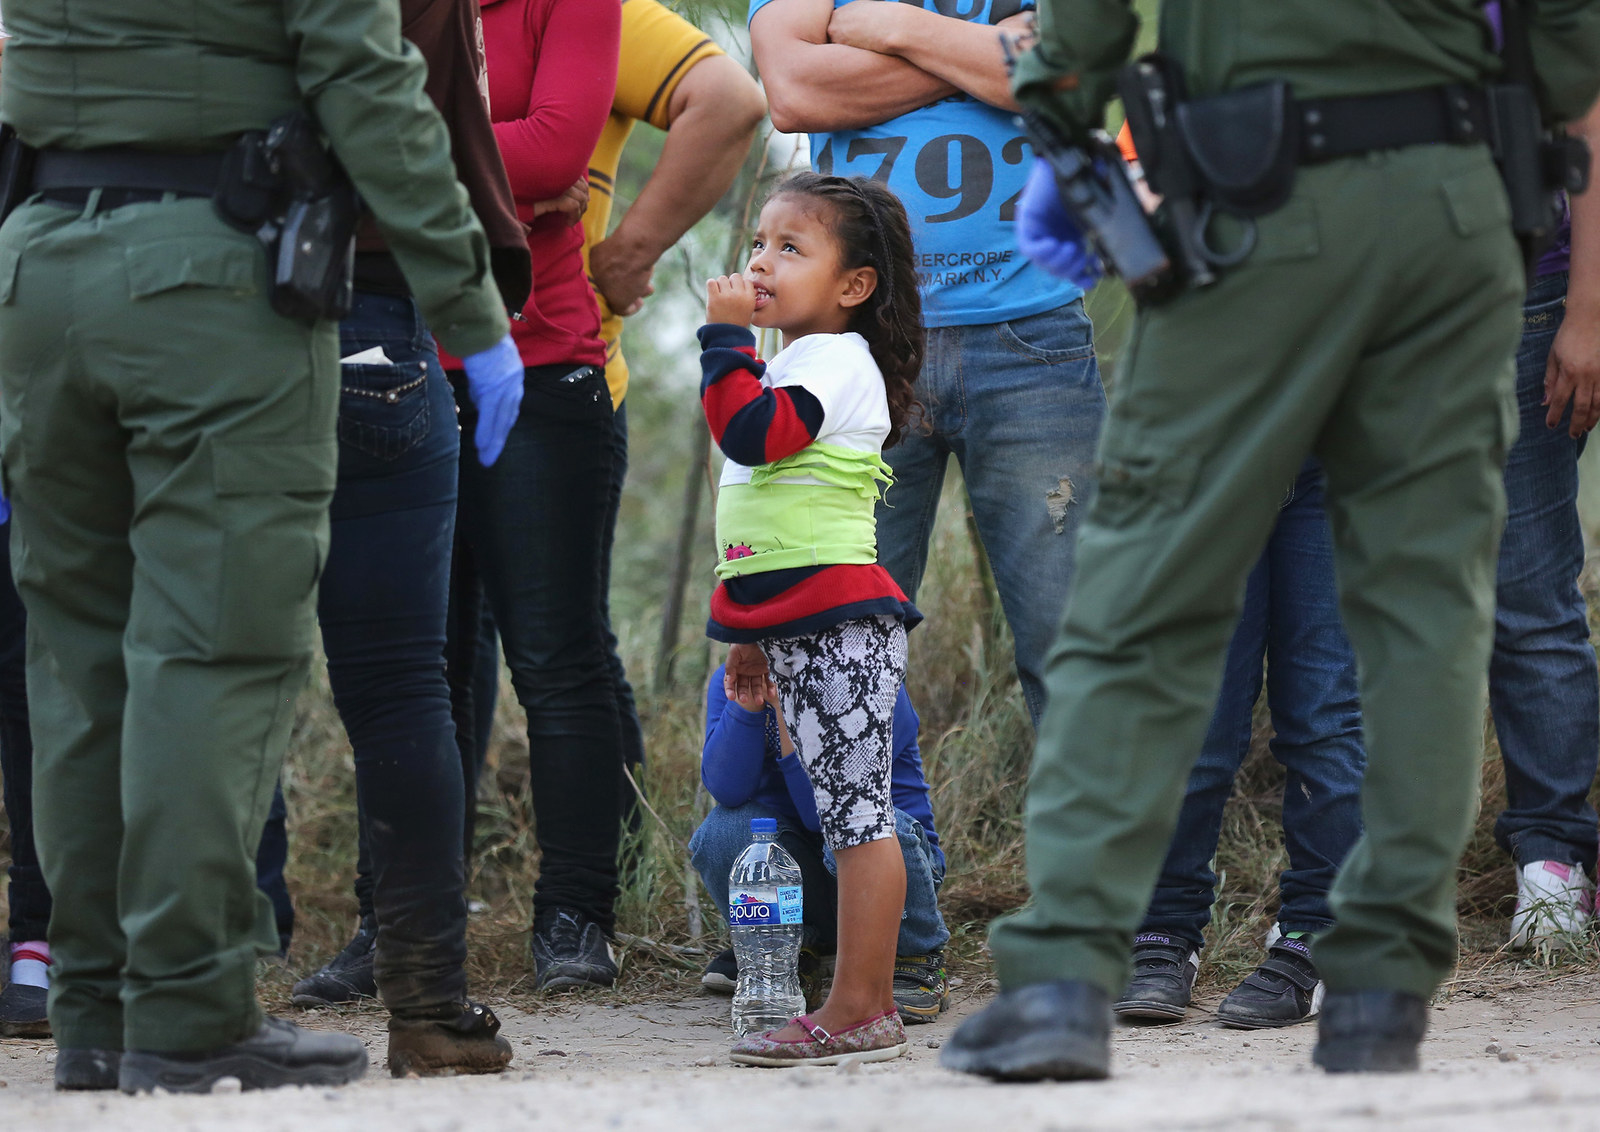 """undocumented mexican and central americans essay In the acclaimed sonnet """"the new colossus"""" american poet emma these restrictions address one central as more illegal immigrants."""